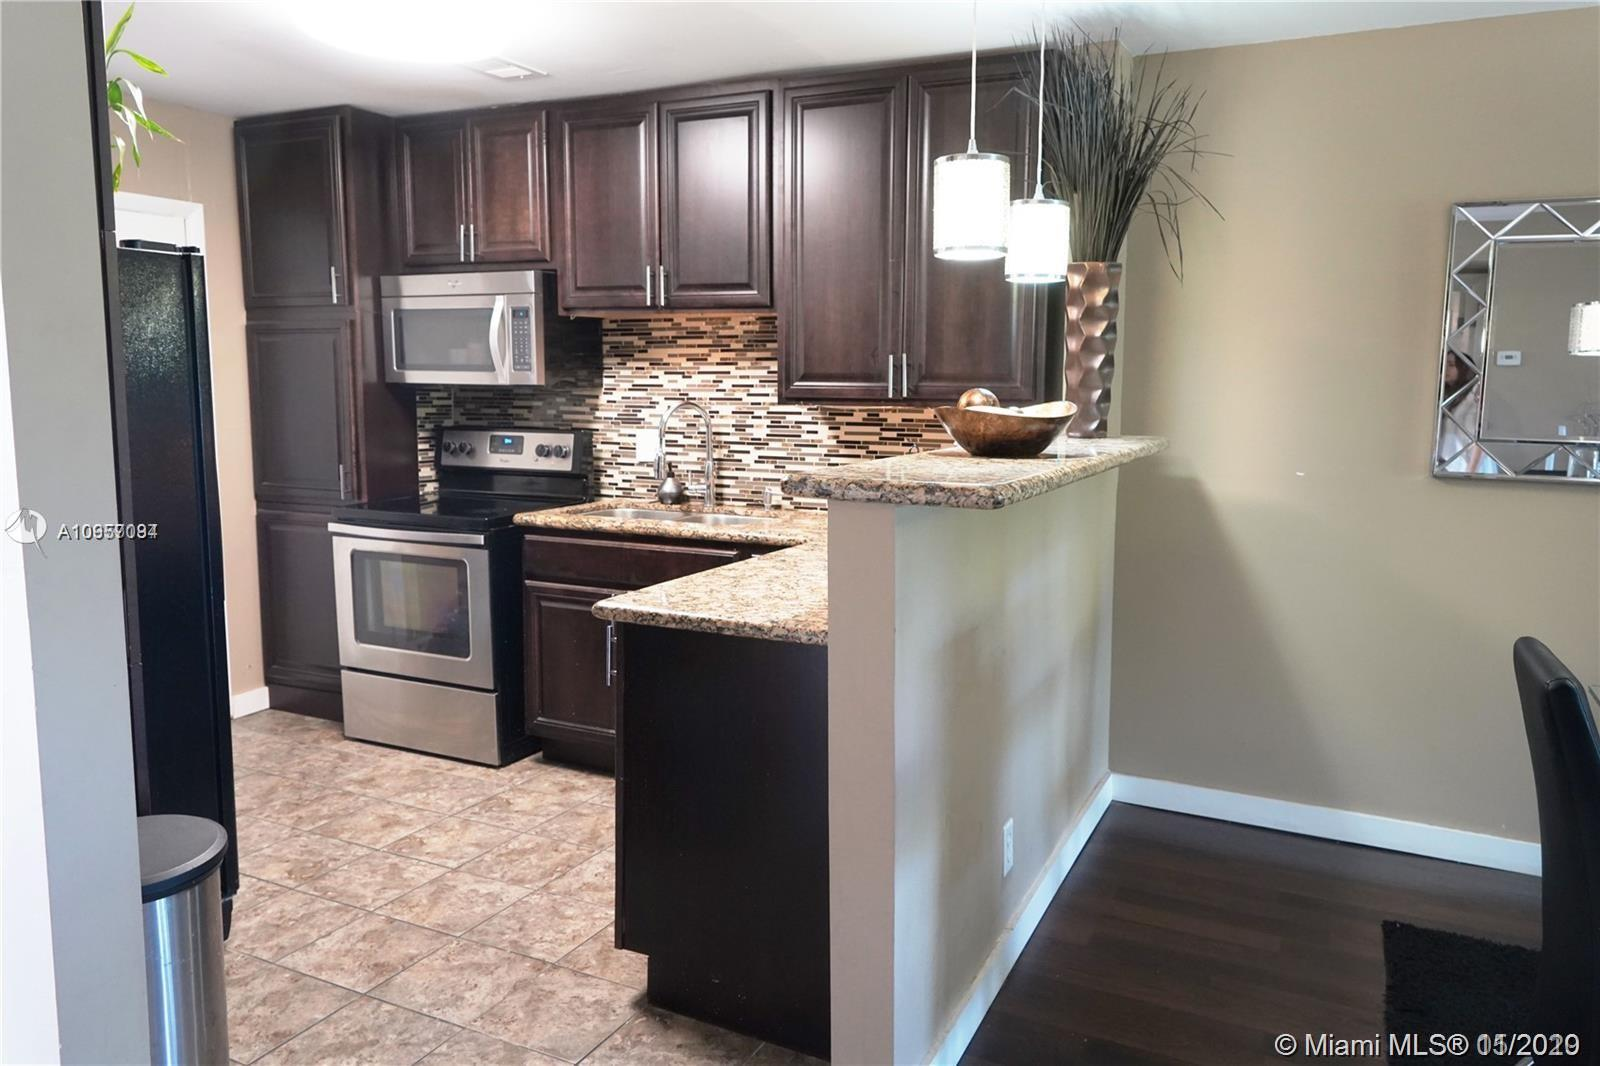 Nice and spacious 2 Bedrooms and 2 Bathrooms condo. Laminate flooring. Stainless steel appliances. Screened patio overlooking the garden. A laundry facility is available on each floor. Gated community guarded 24/7. Credit must be above 675 and Income must be above $37,500 per association.